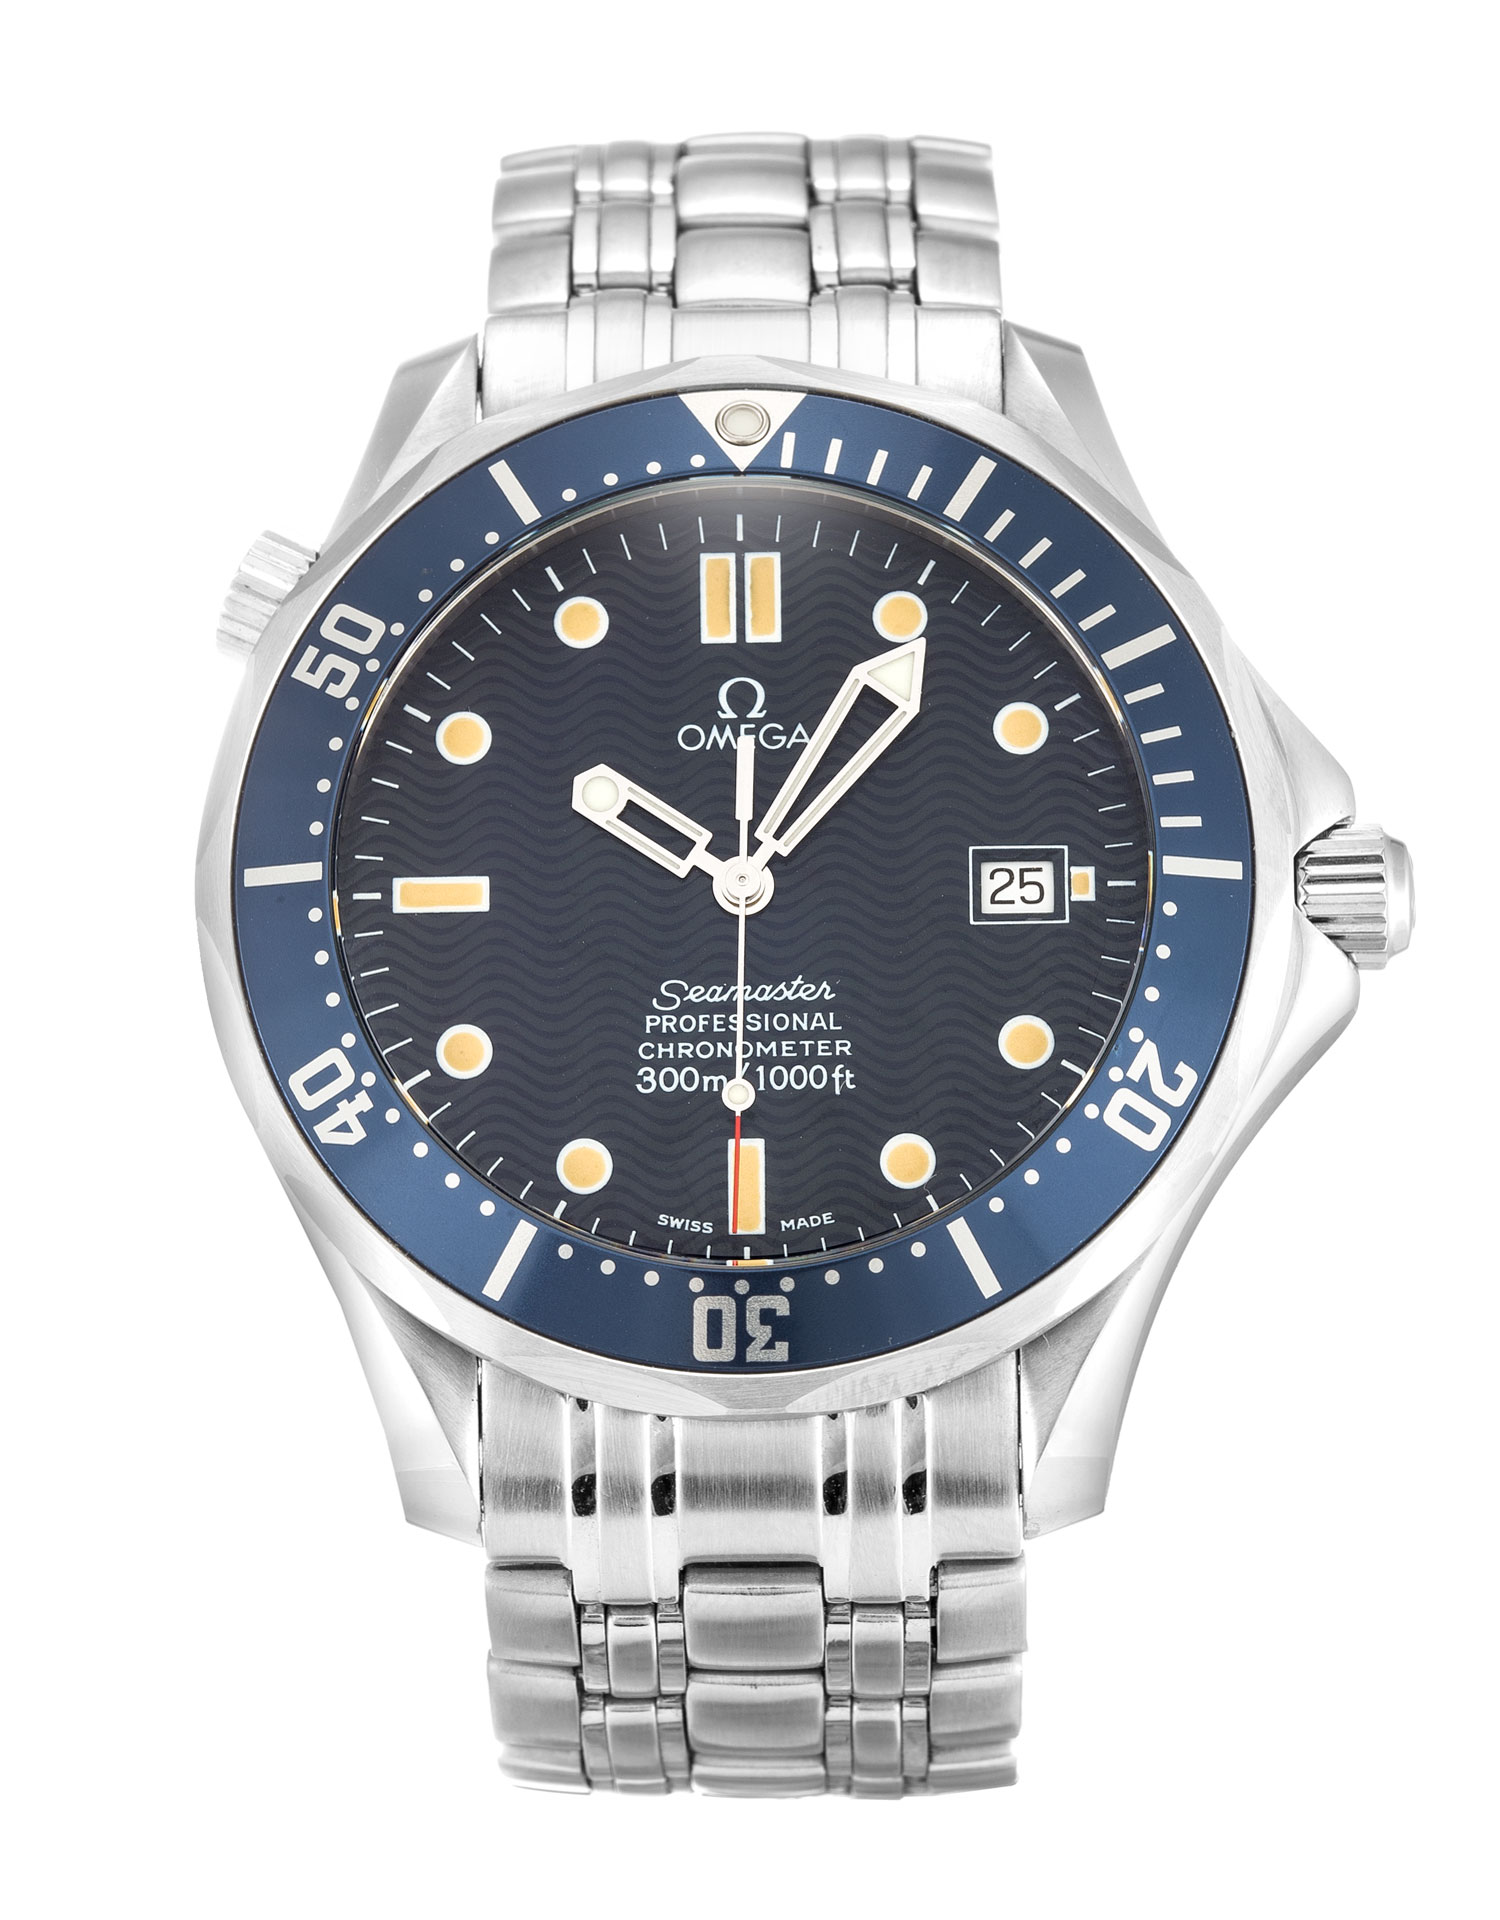 Omega Seamaster 300m 2531.80.00 Mens 41 Mm Steel Case Automatic Movement – iapac.to